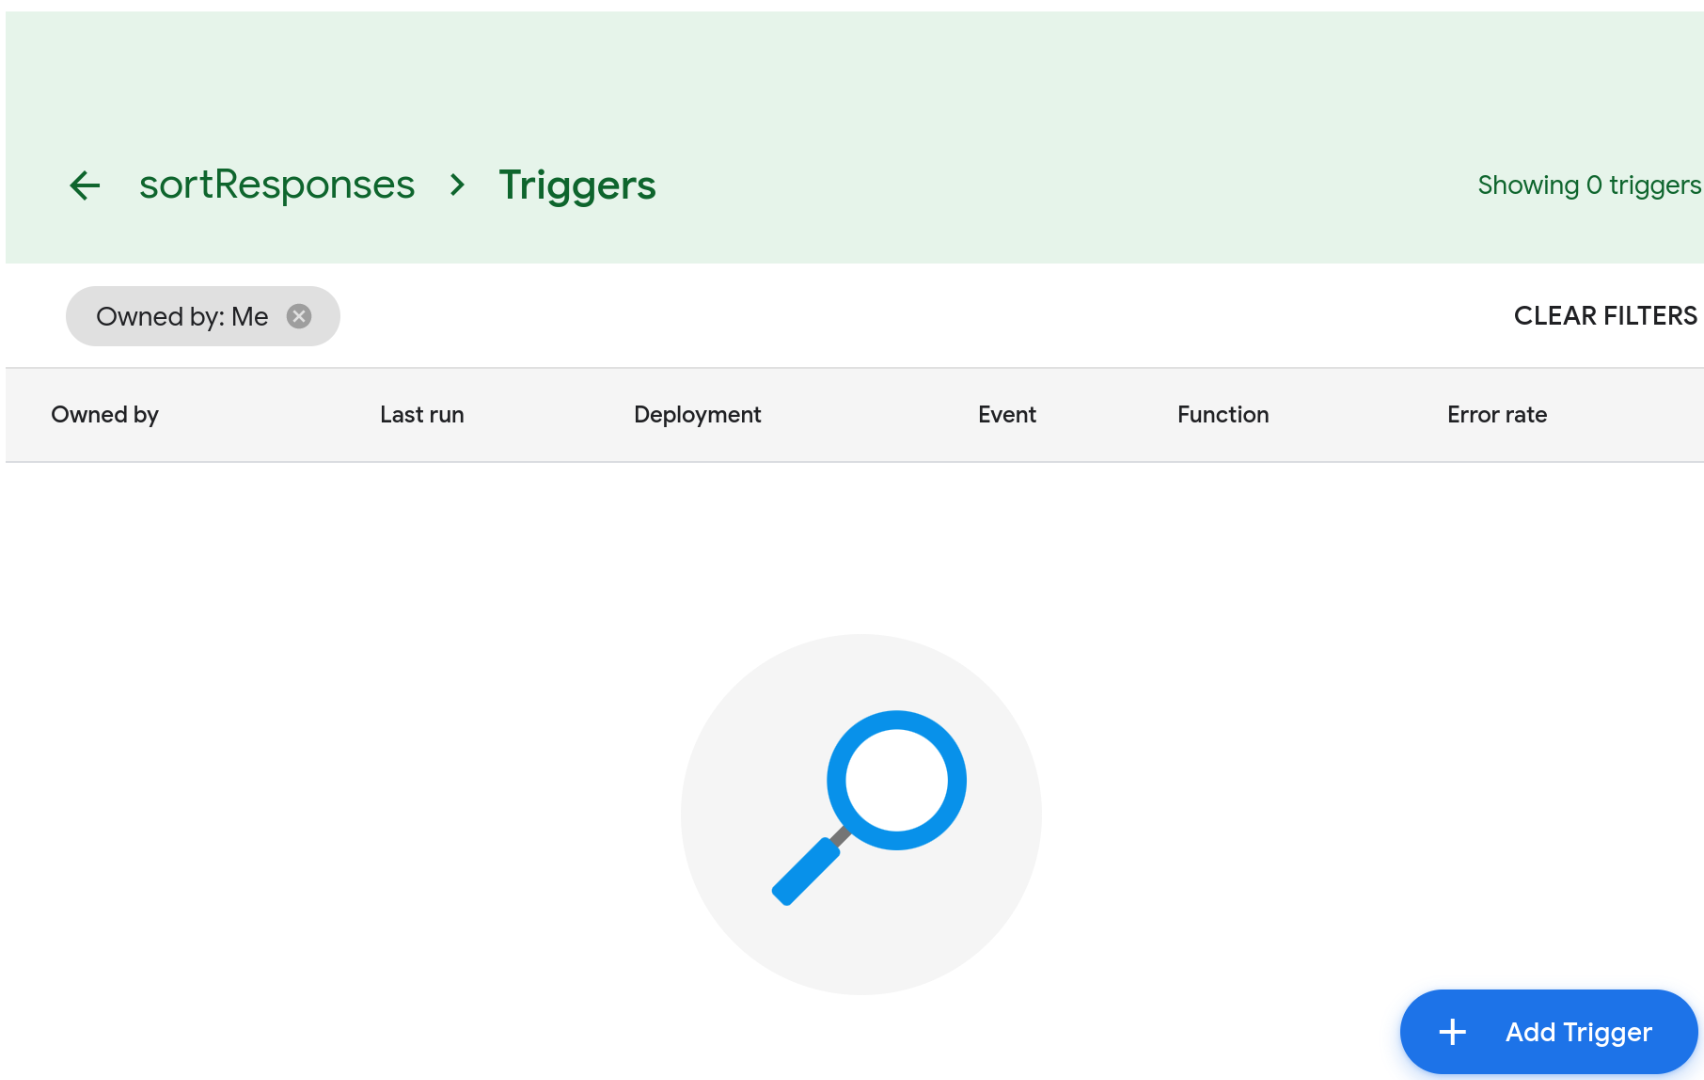 Screenshot of the script's triggers page. The page is empty since no triggers have been created for this script.